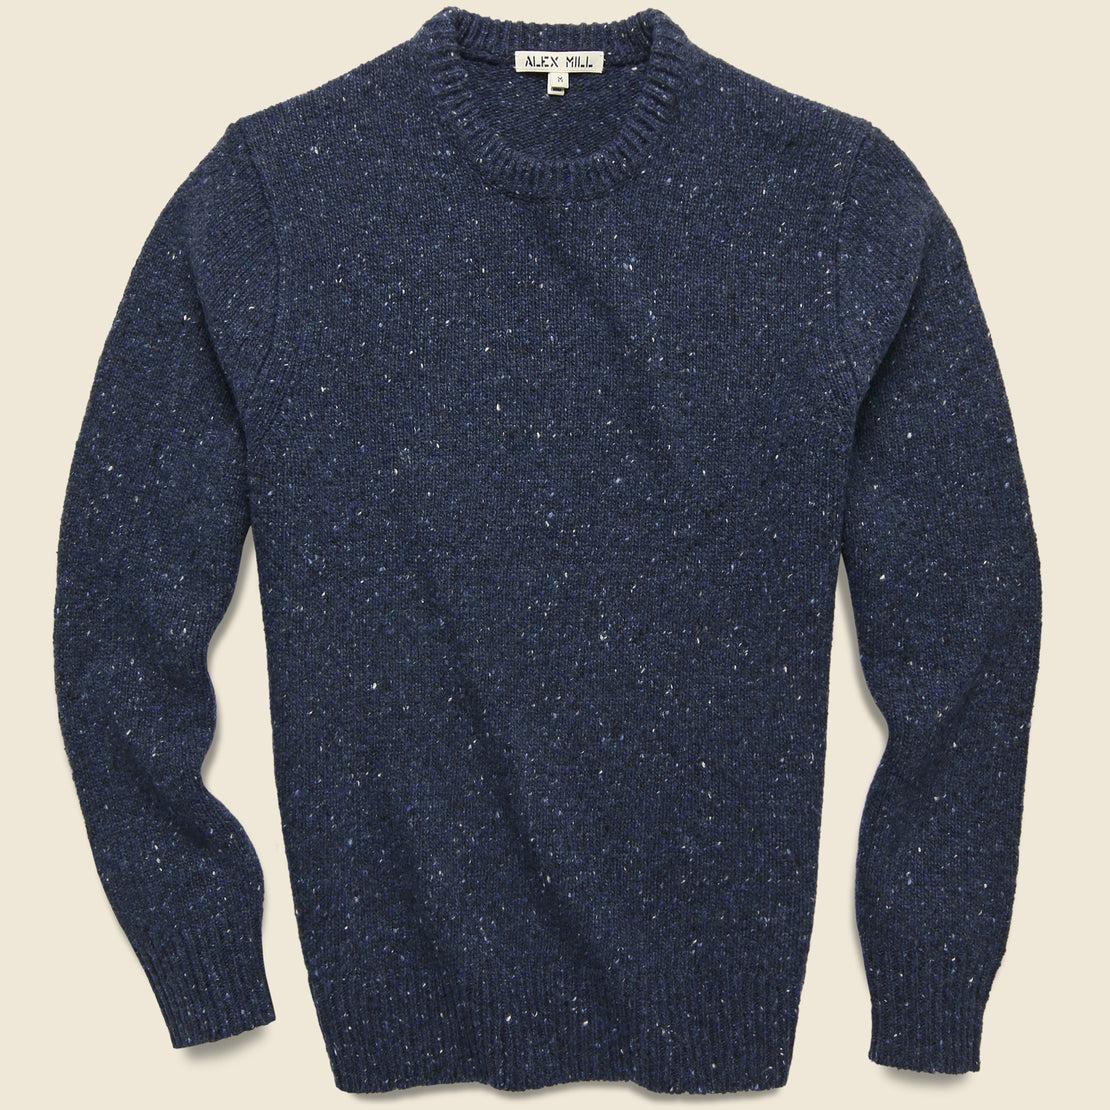 Alex Mill Donegal Wool Sweater - Navy